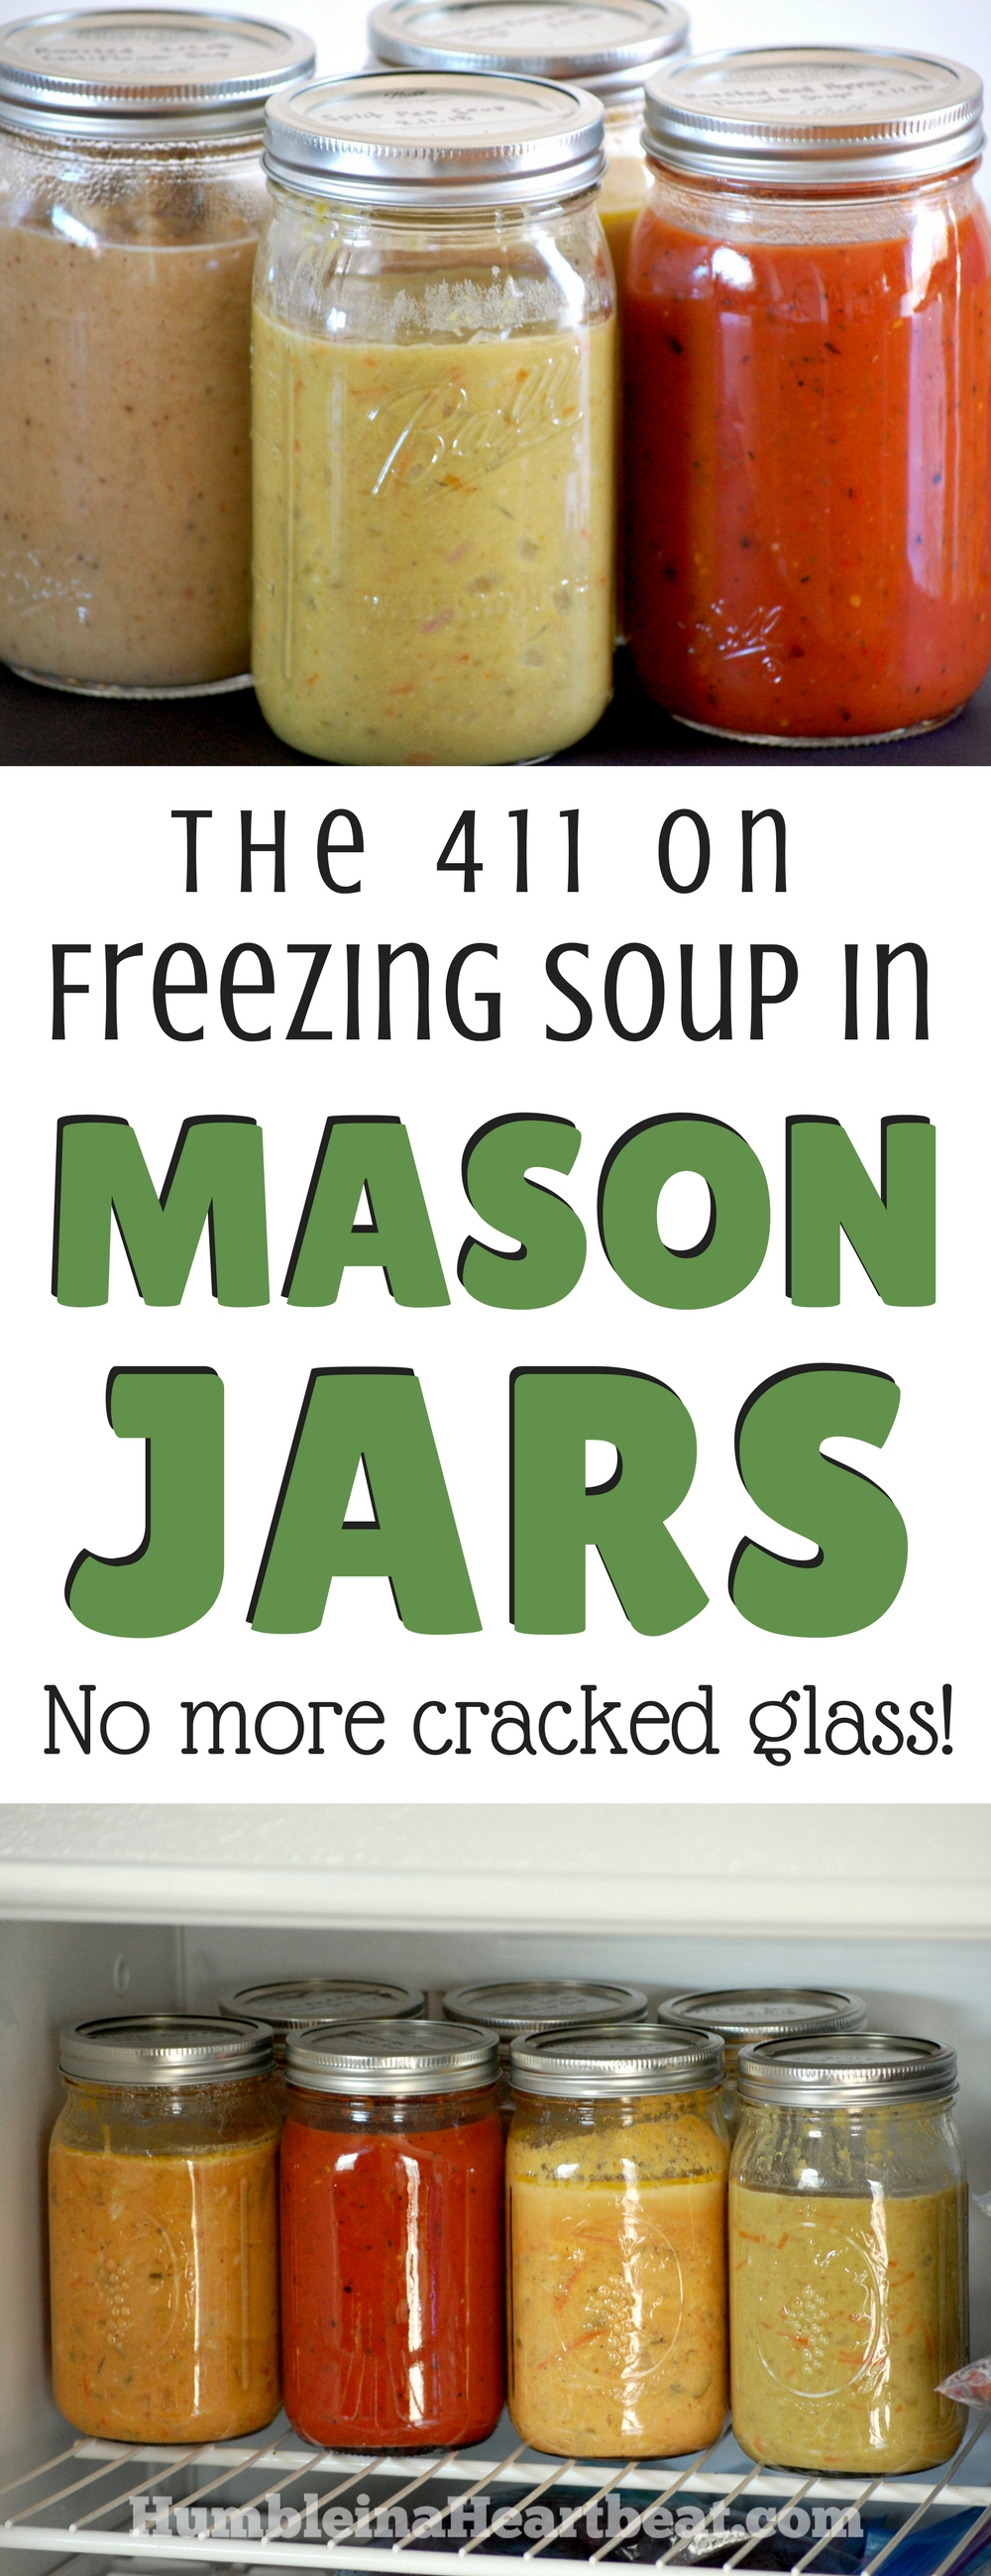 Ever tried freezing soup in a glass jar and wound up with cracked jars? Follow these amazing tips for freezing and thawing soup in mason jars and you won't find any more cracks. Promise! #soupseason #freezercooking #prepahead